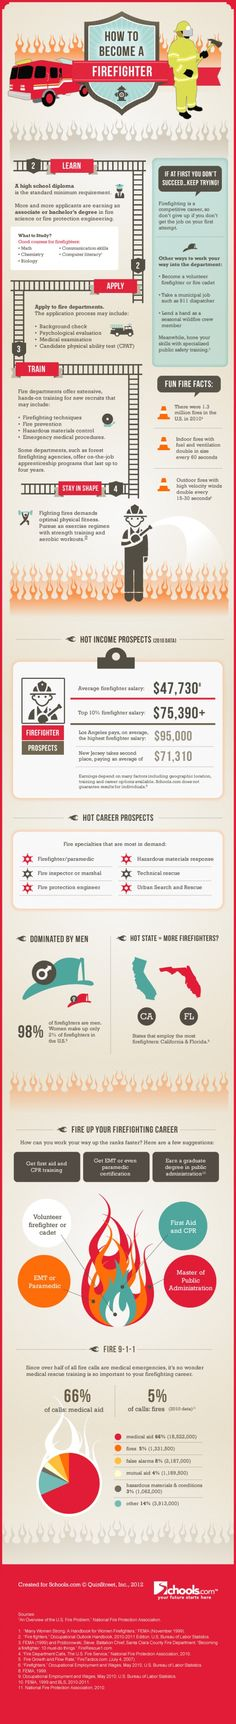 How to Become a Firefighter | Shared by LION